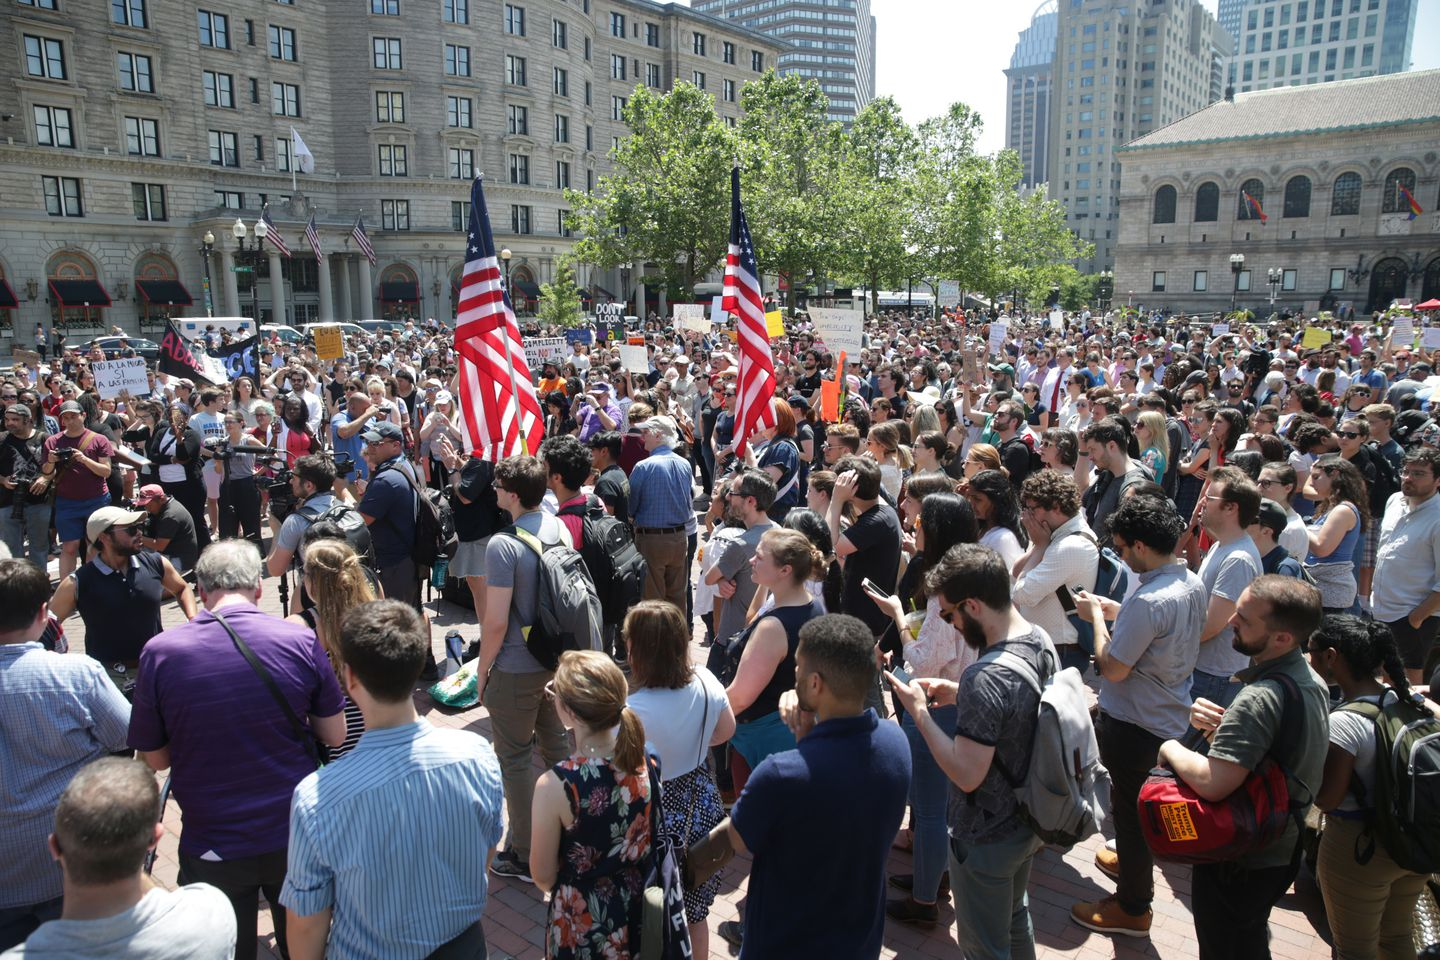 Wayfair employees and others gathered at a rally at Copley Square.